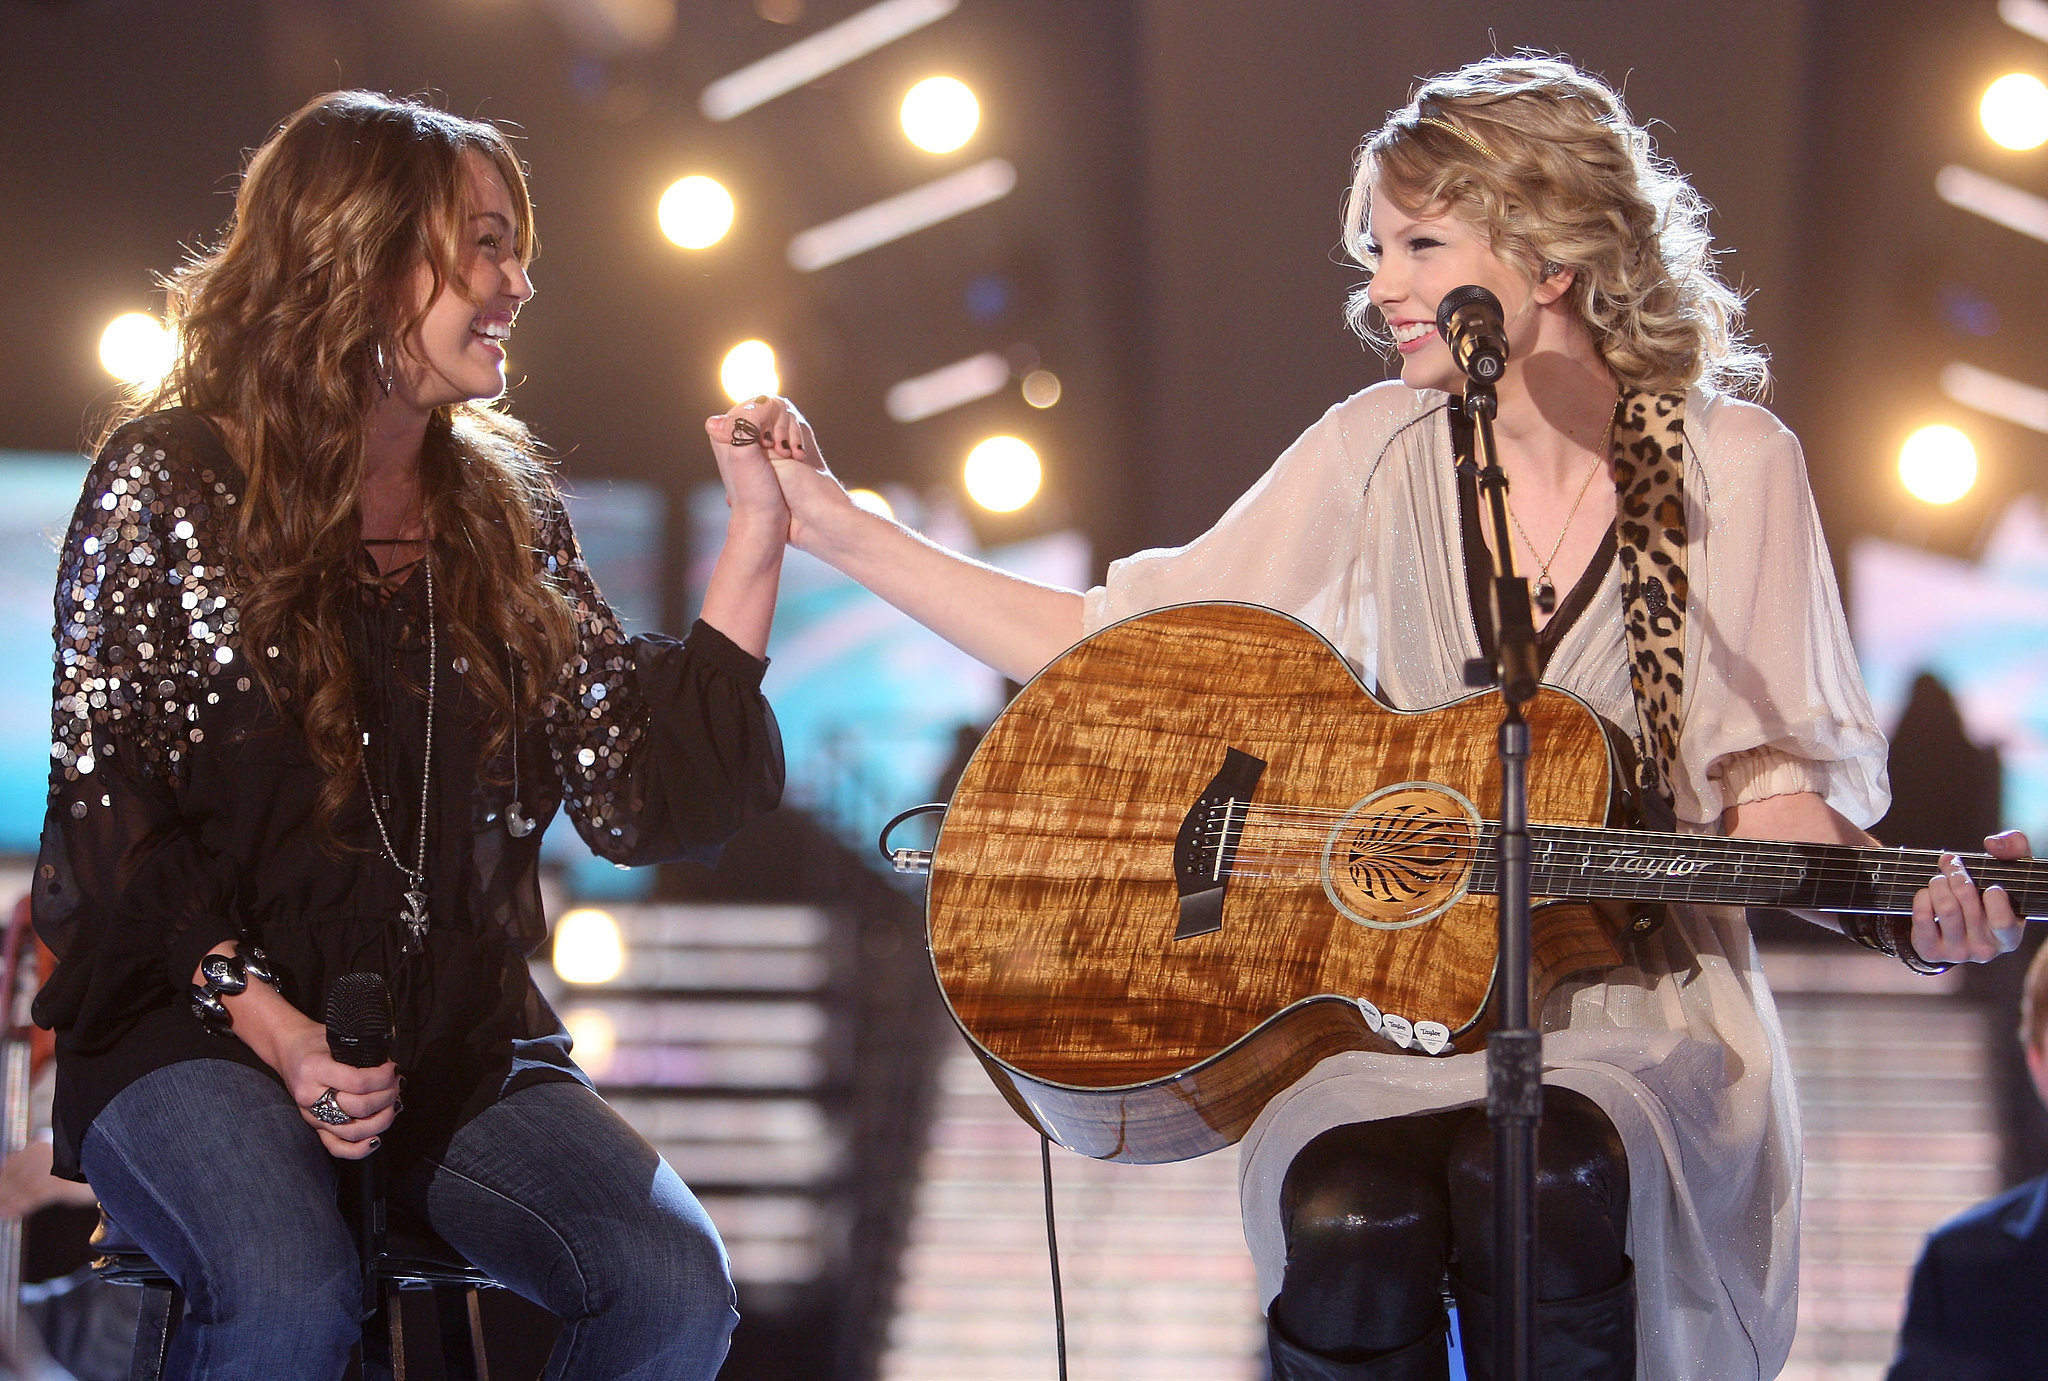 Miley Cyrus and Taylor Swift performed together in 2009.